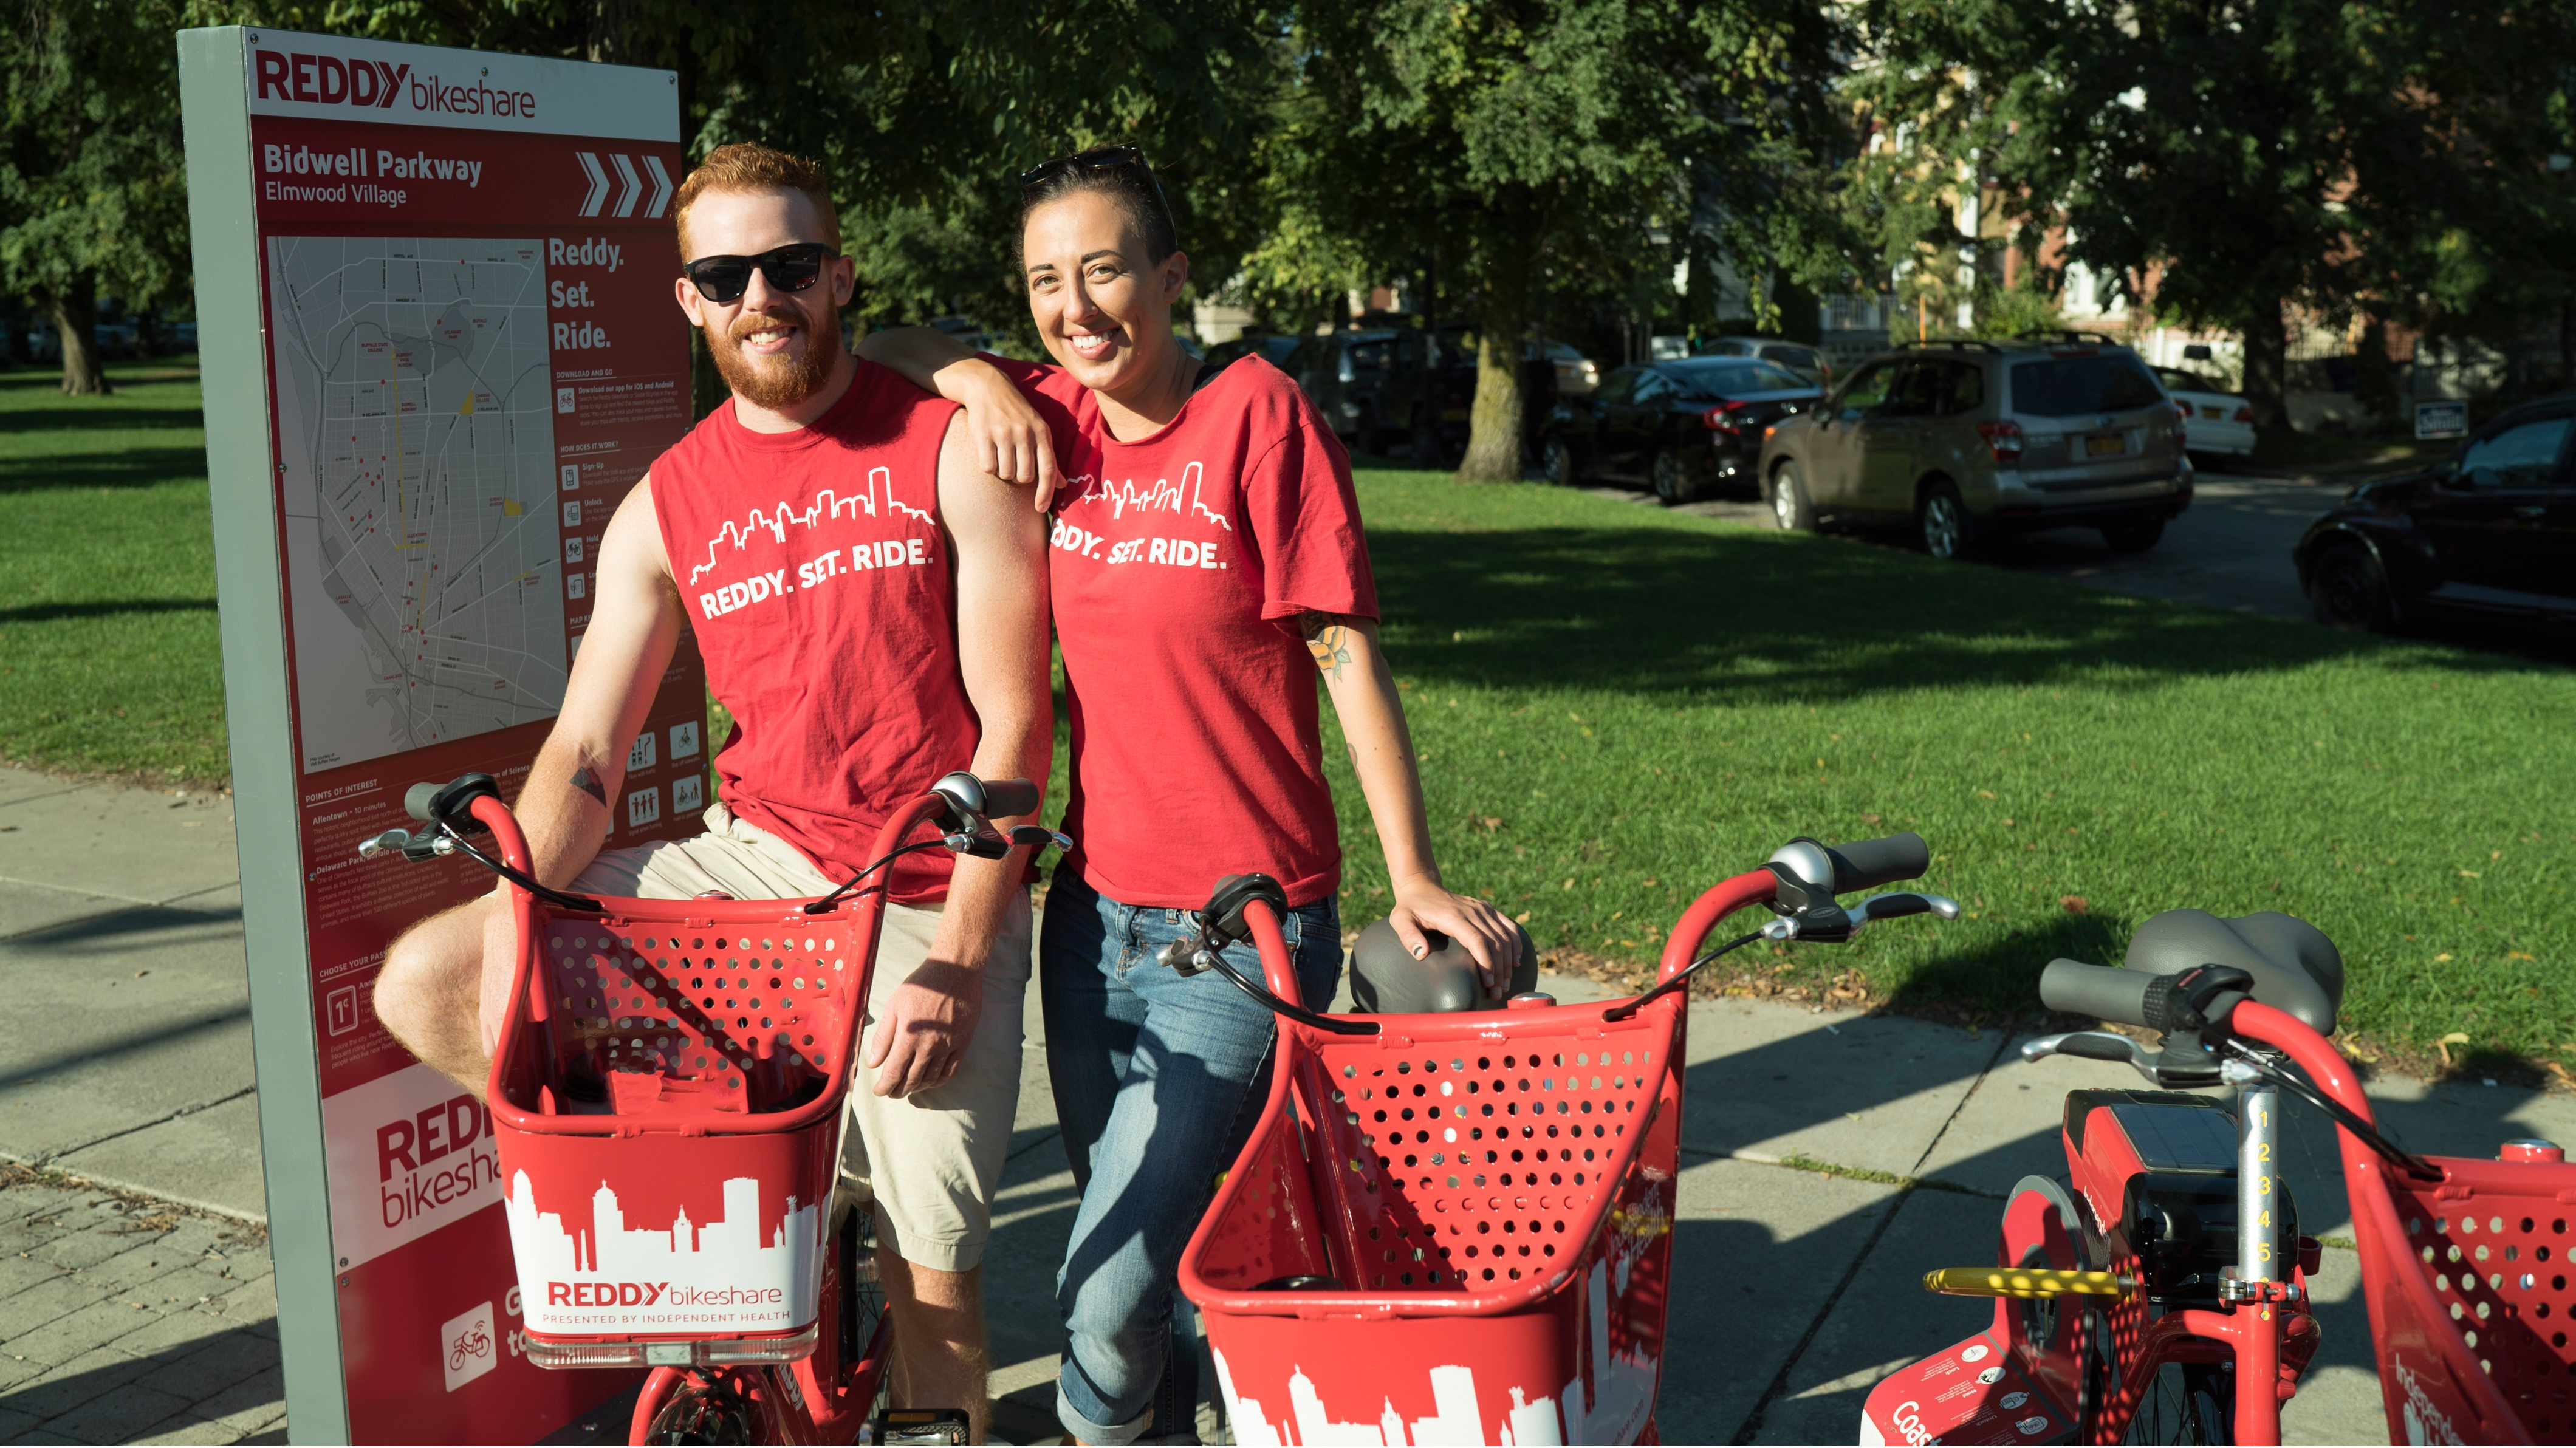 Fleet manager Nate Schultz and communications executive Jennifer White get ready for a ride with Reddy bikeshare.